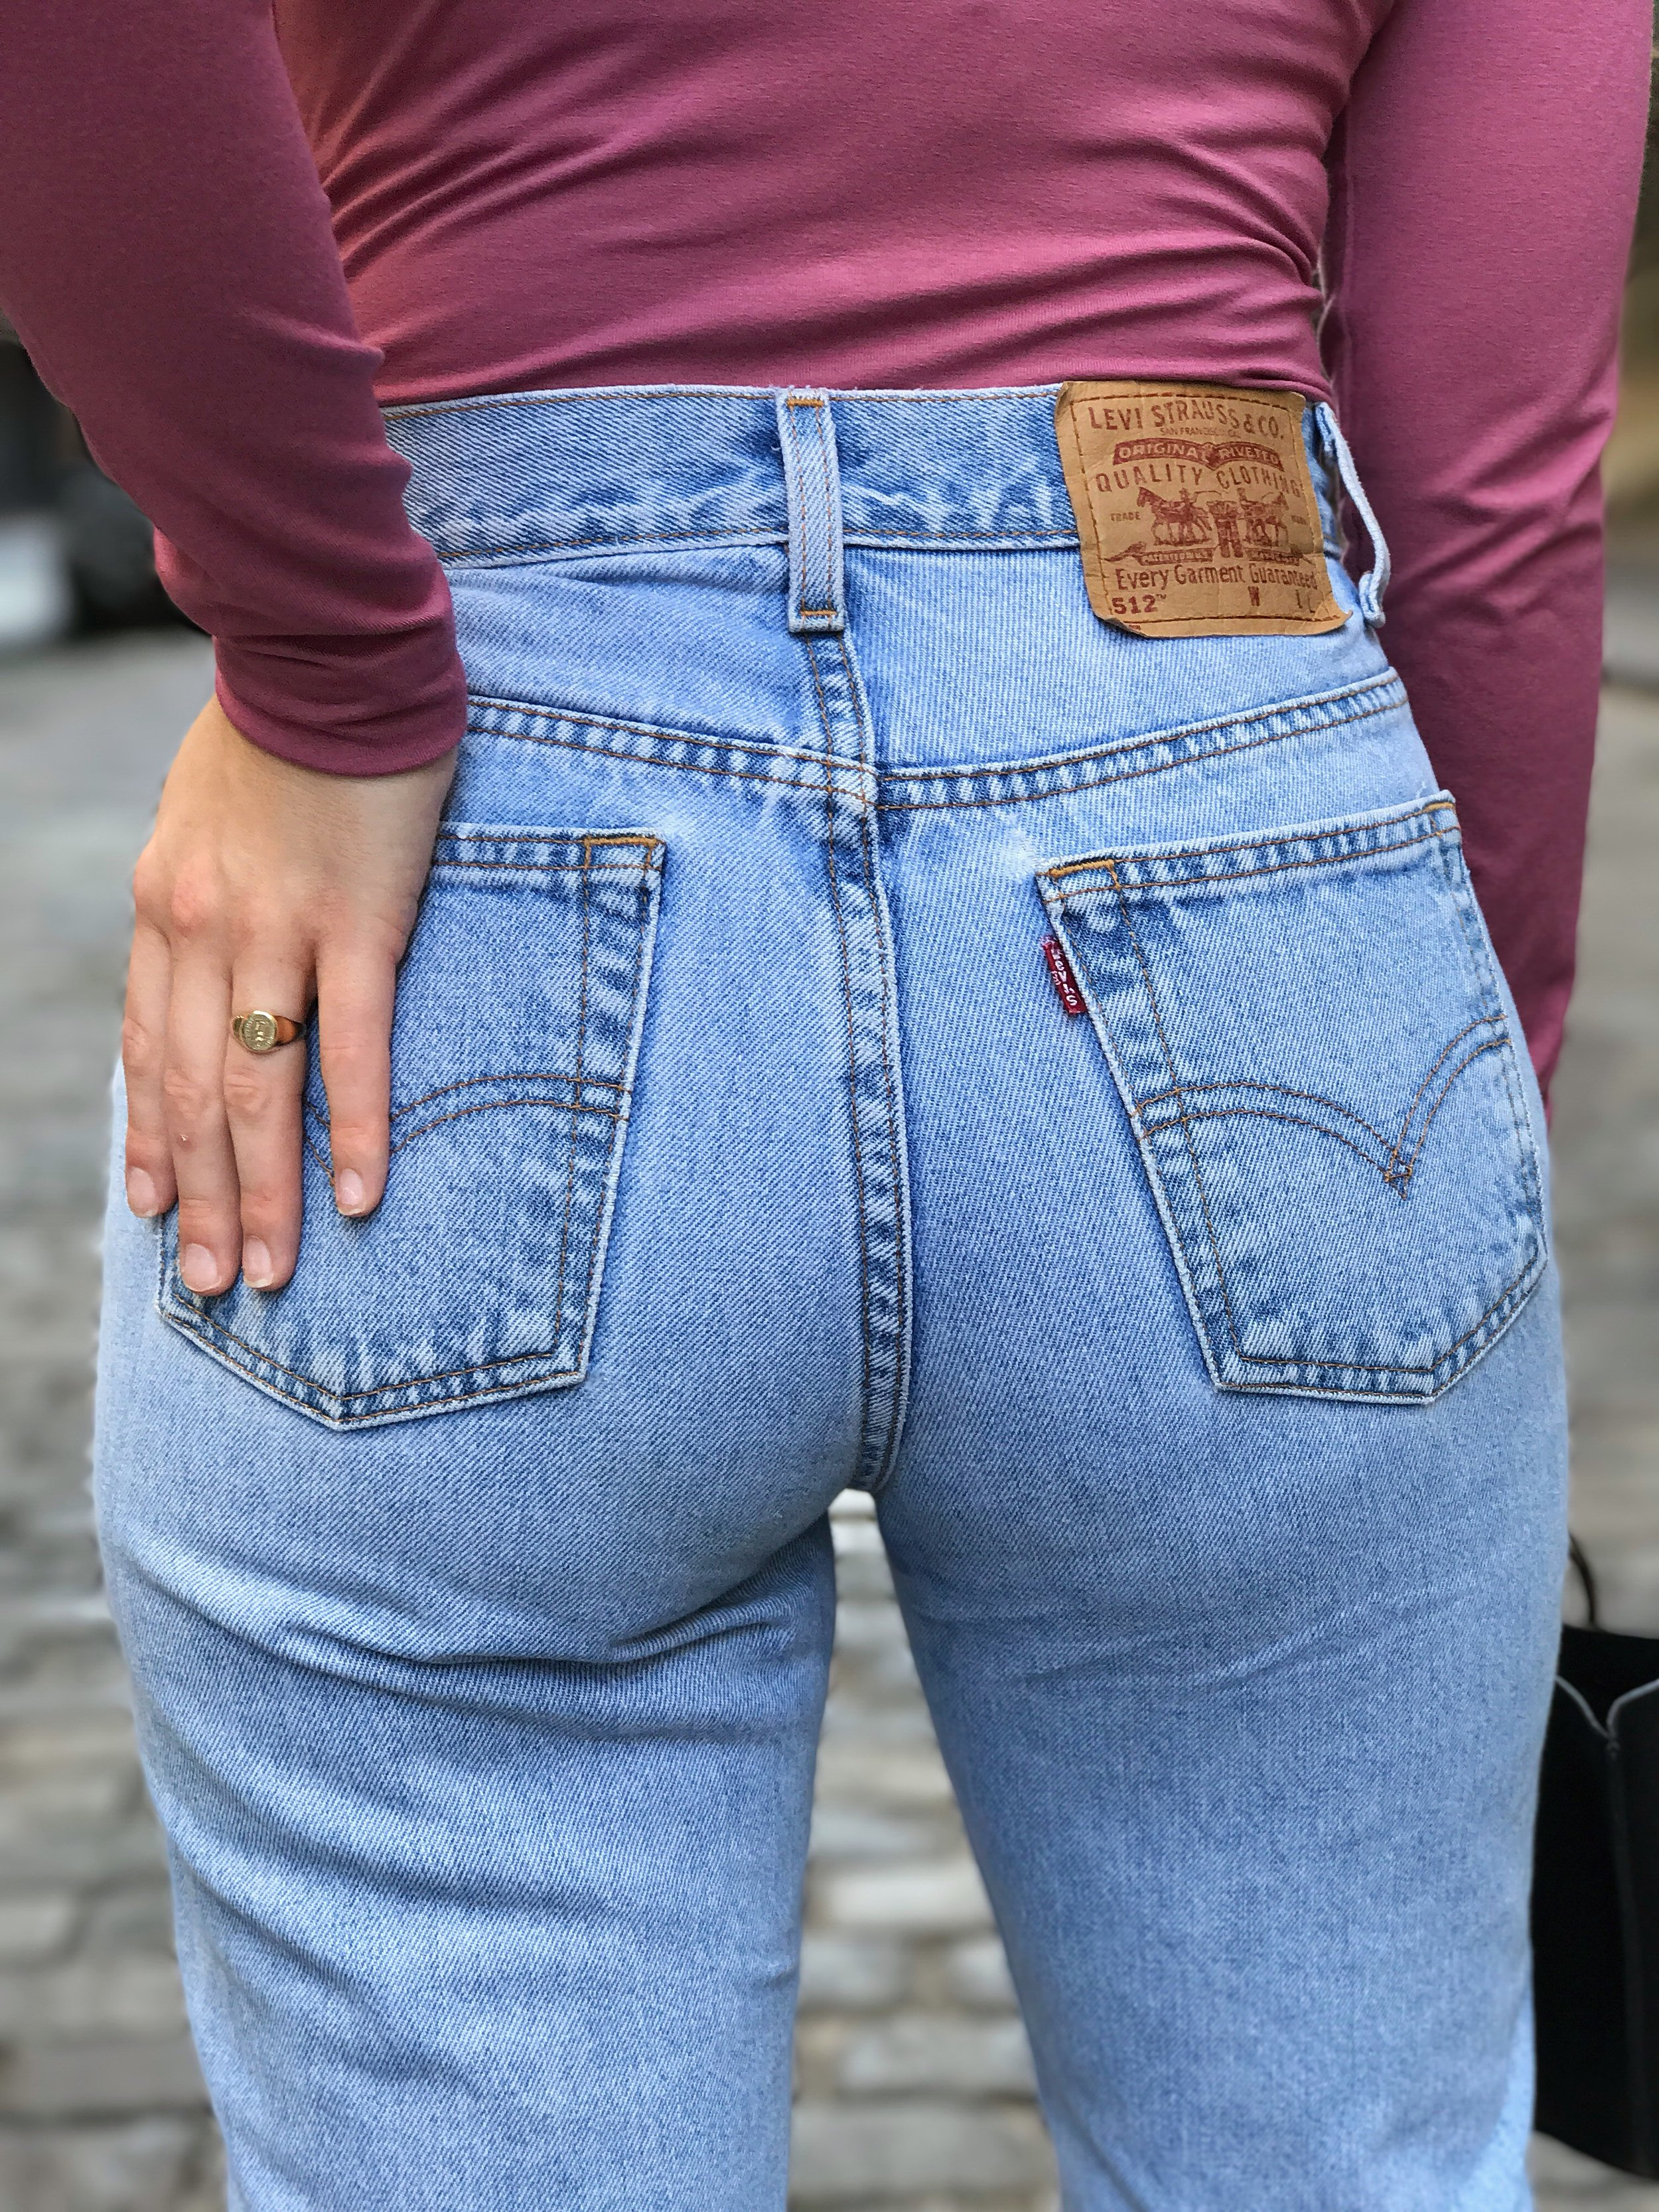 Vintage Levi's Jeans from L Train Vintage - How to Shop for Vintage Jeans When You're Petite & Curvy